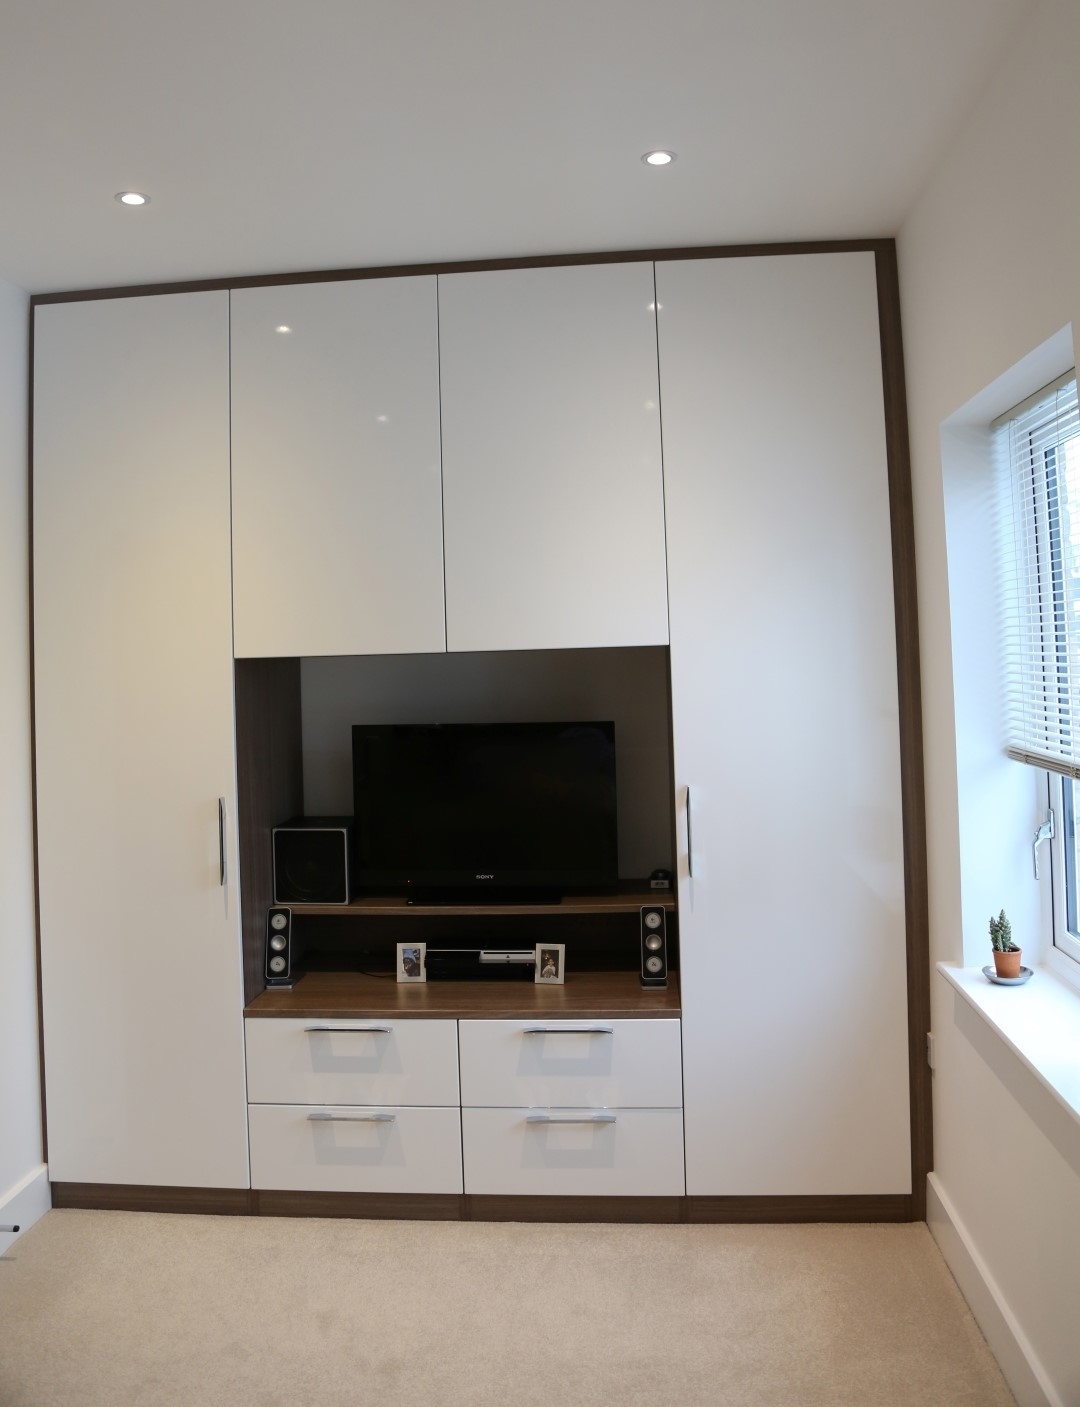 Built In Wardrobe Designs Dressing Table And Bedroom With Tv Unit Regarding Built In Wardrobes With Tv Space (View 9 of 15)